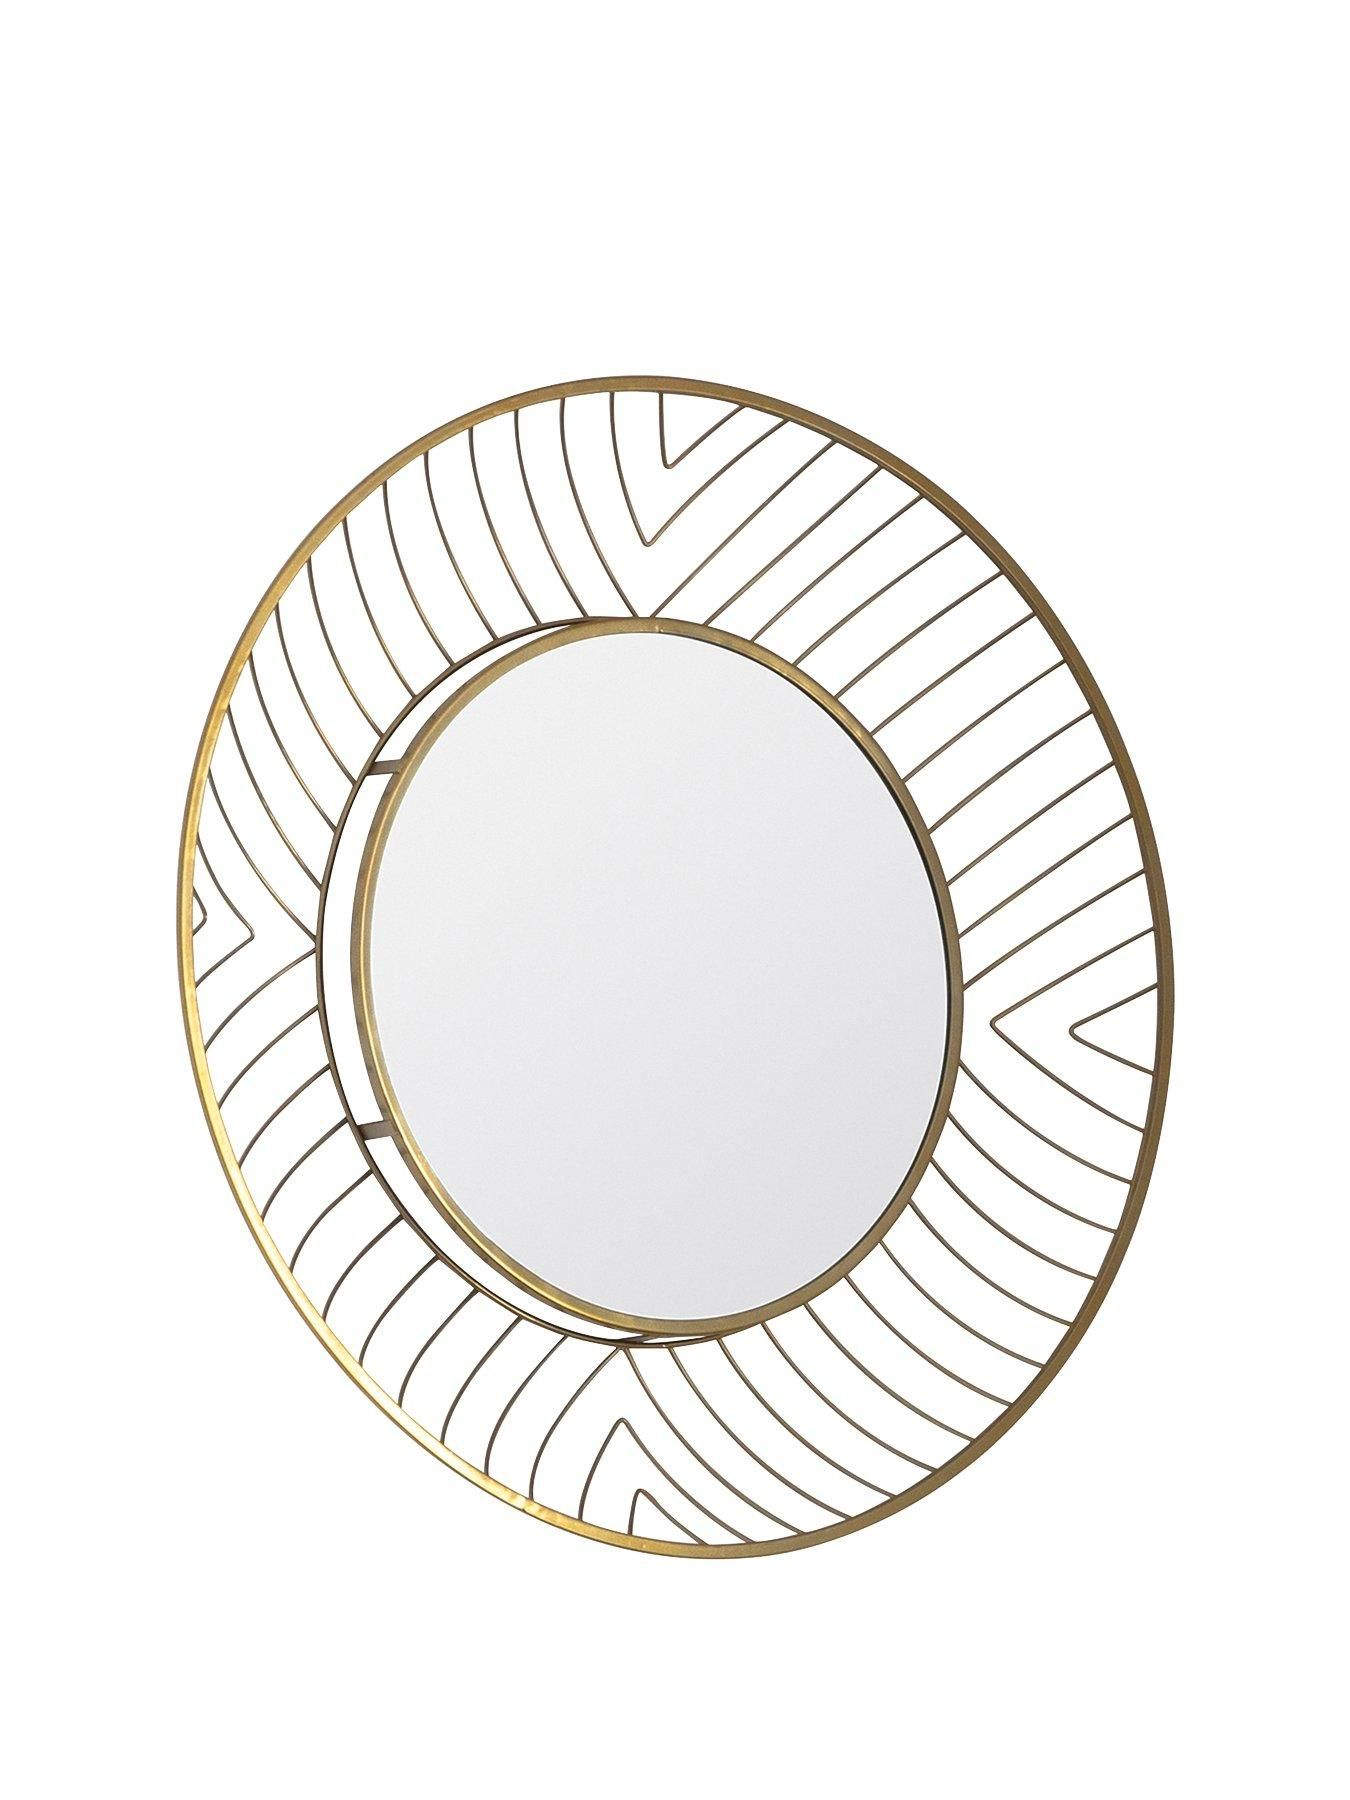 Littlewoods Ireland Online Shopping Fashion Homeware In 2020 Mirror Wall Large Round Mirror Fashion Online Shop